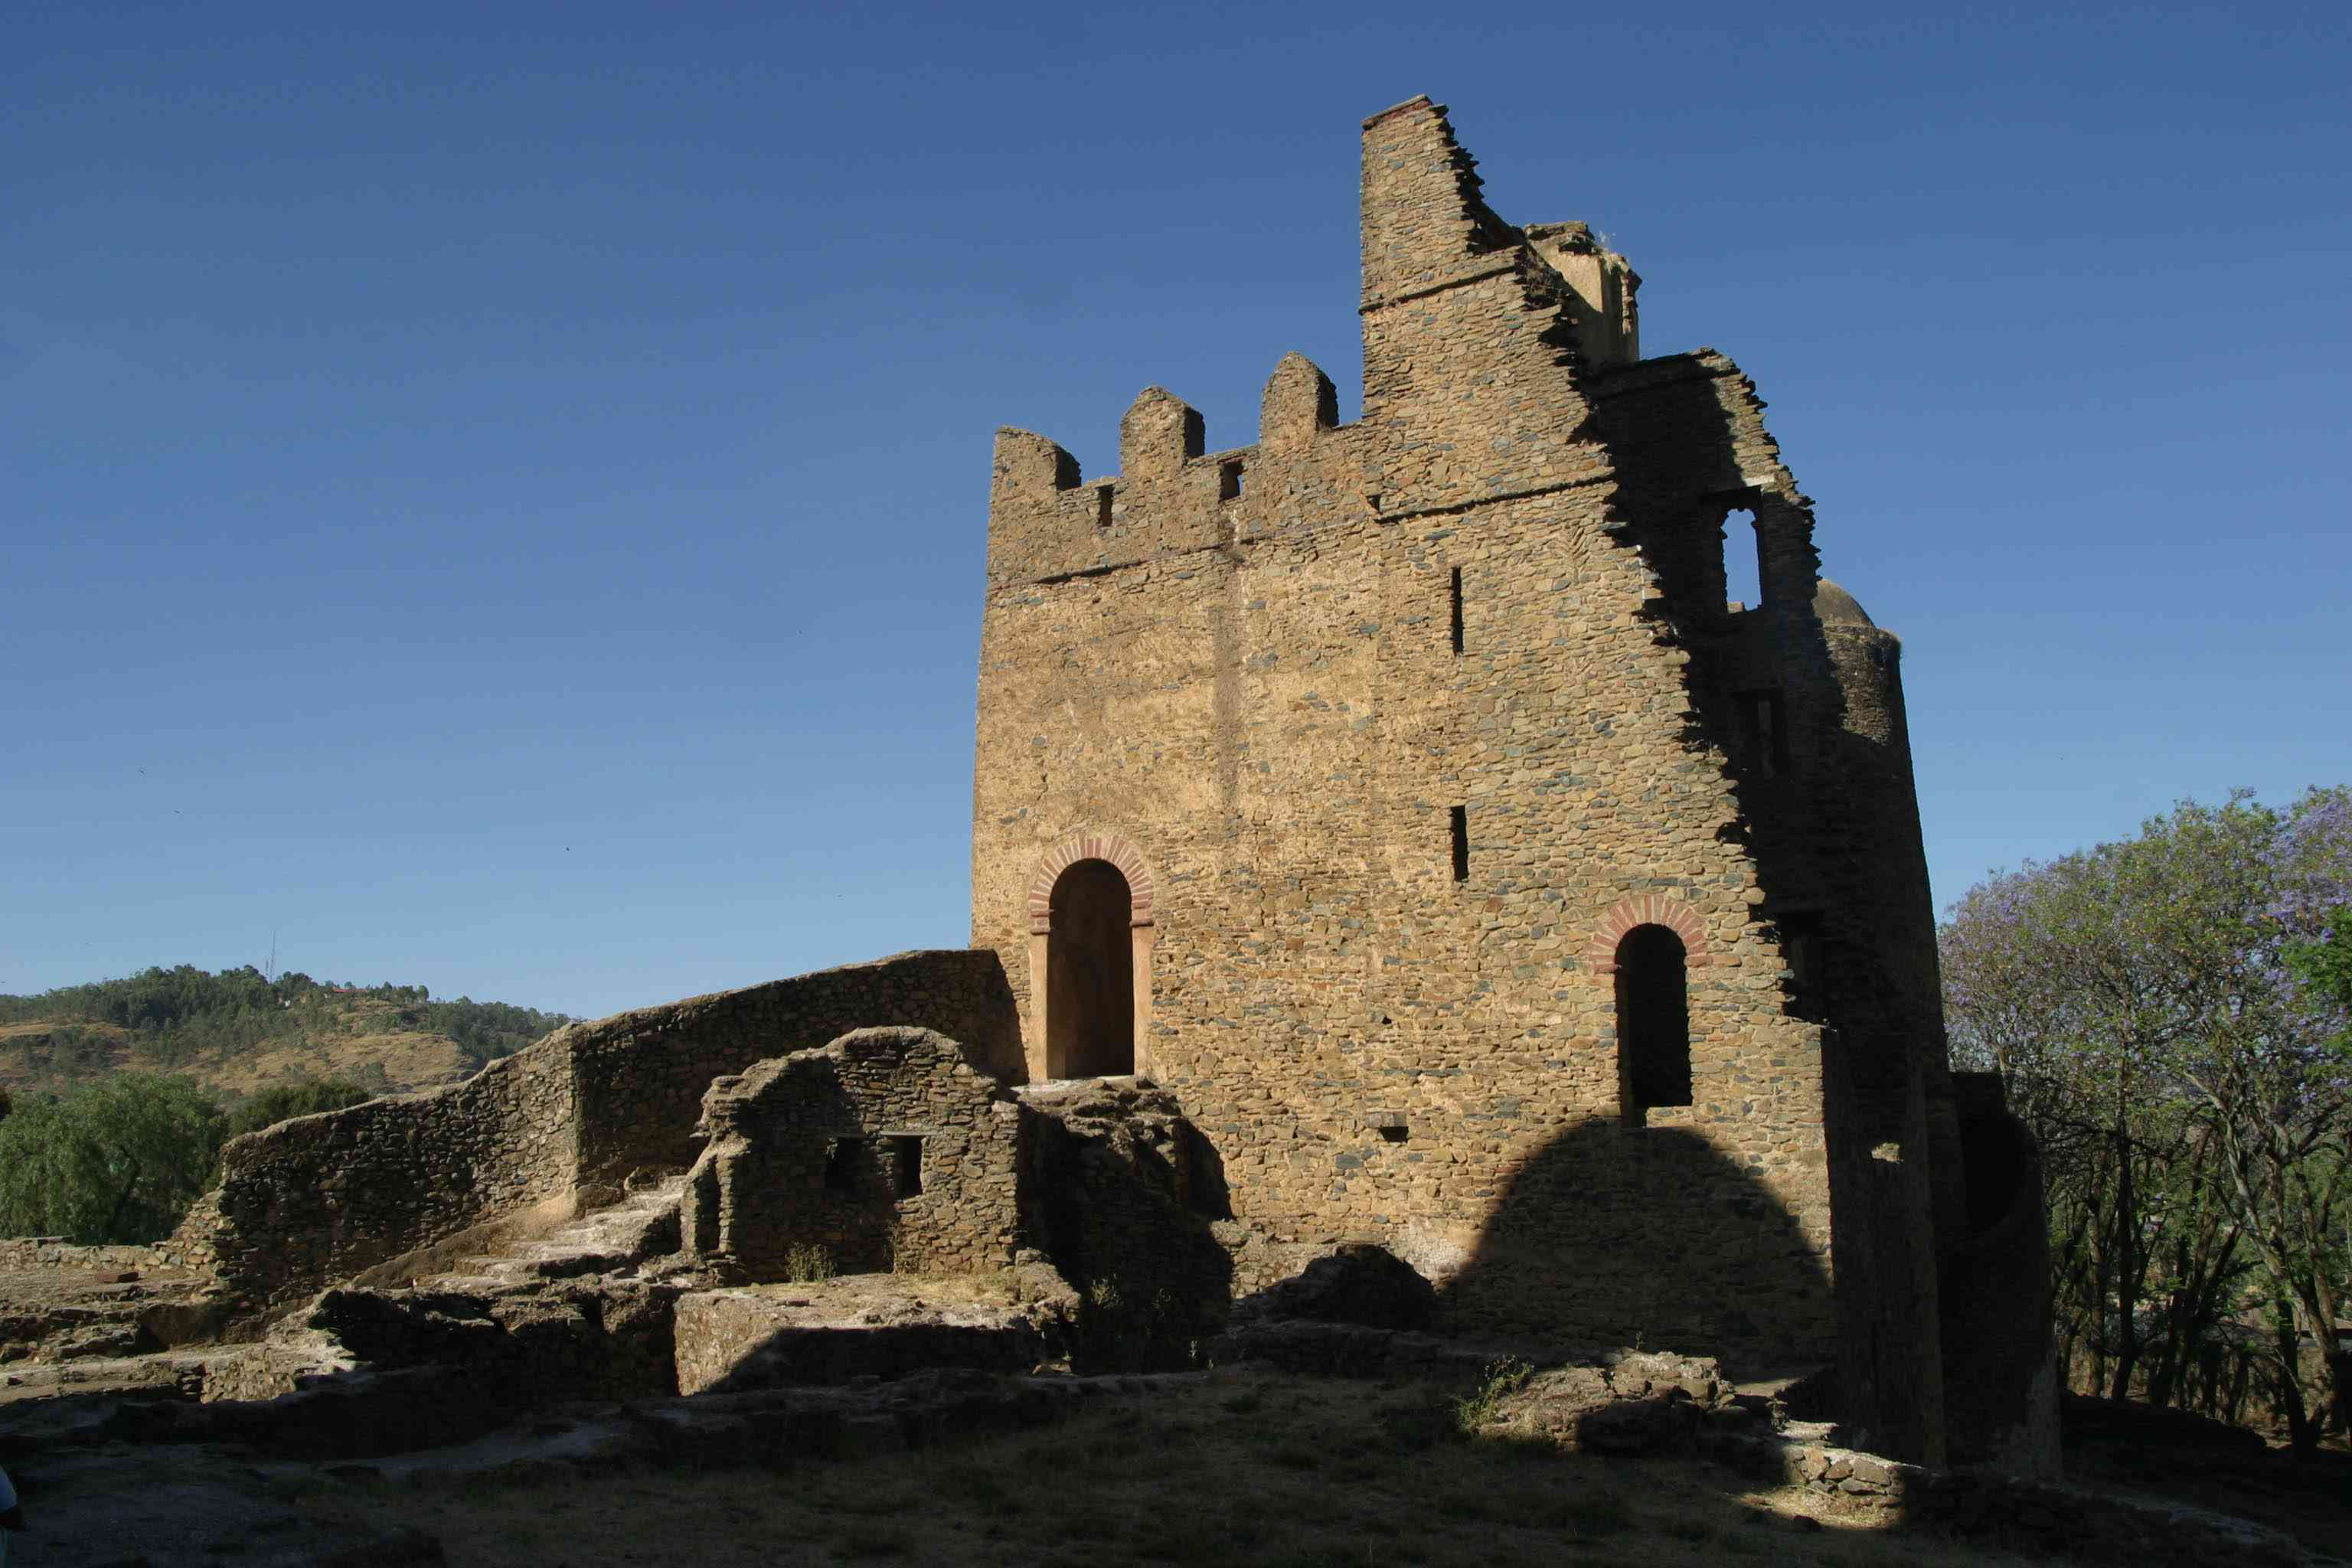 Tomb of the Brick Arches, Axum